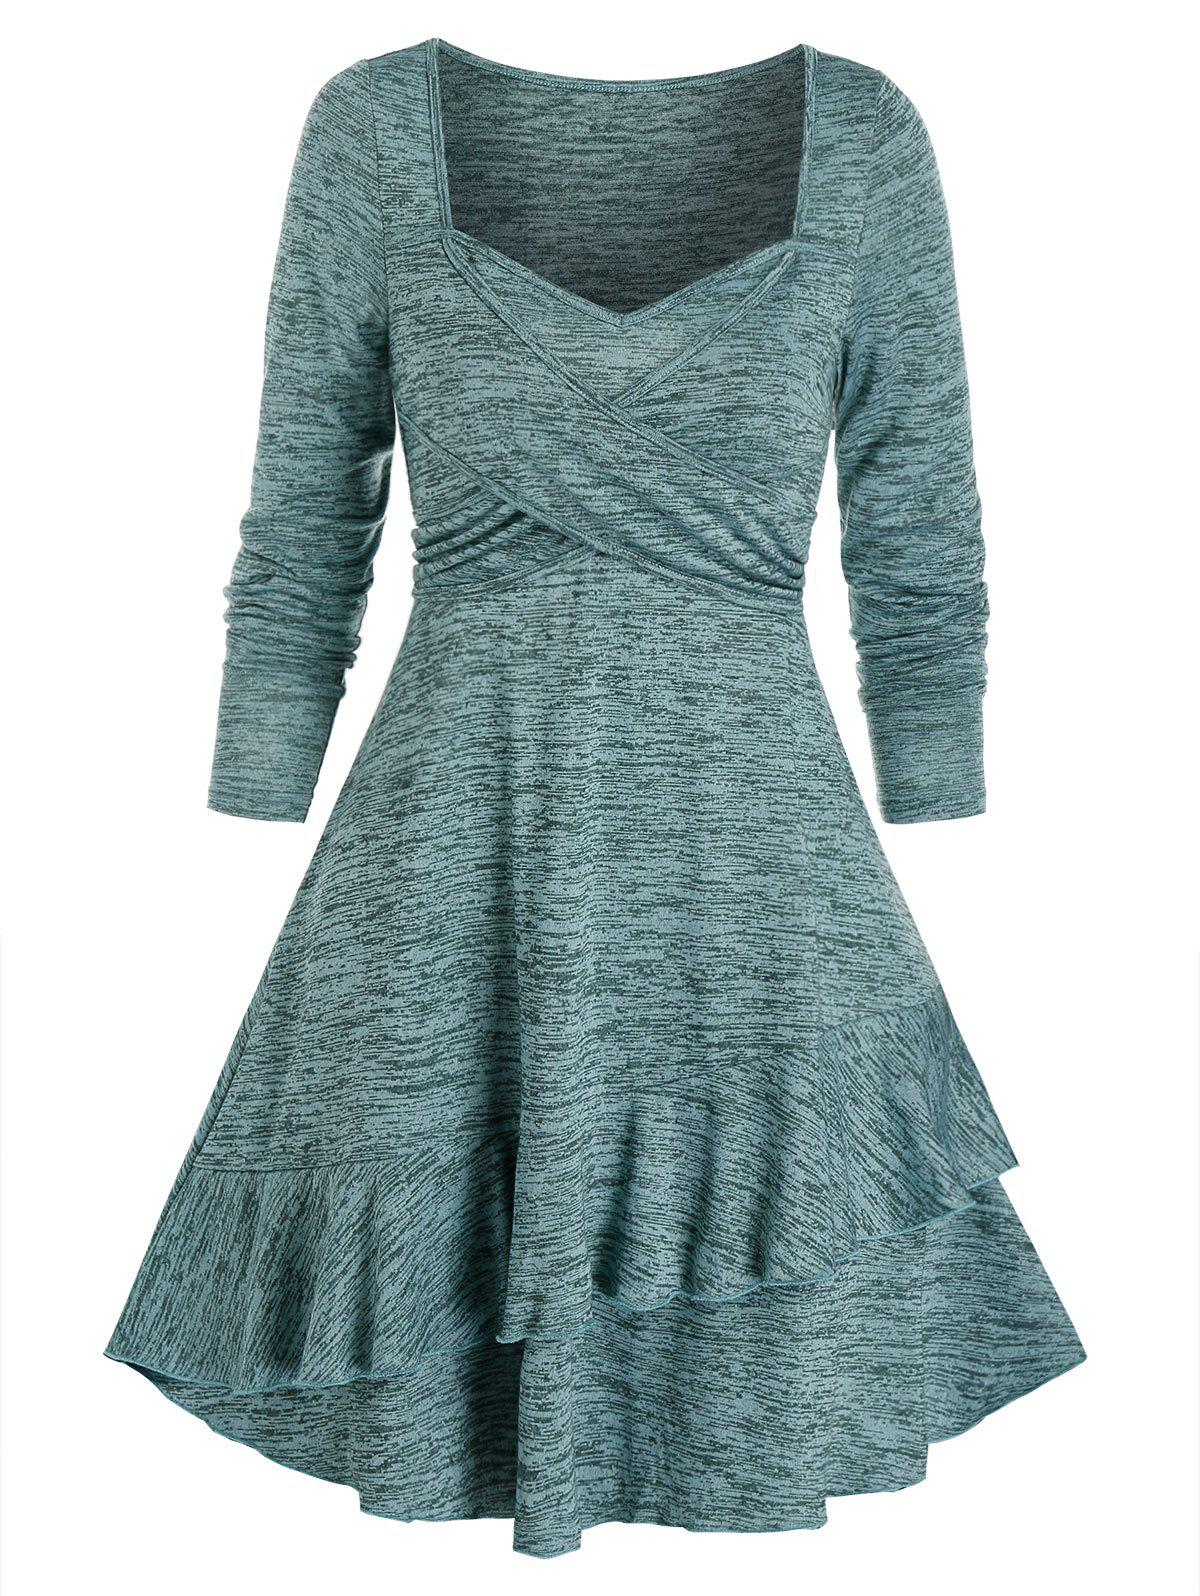 Space Dye Crisscross Knitted Layered A Line Dress - CYAN OPAQUE M